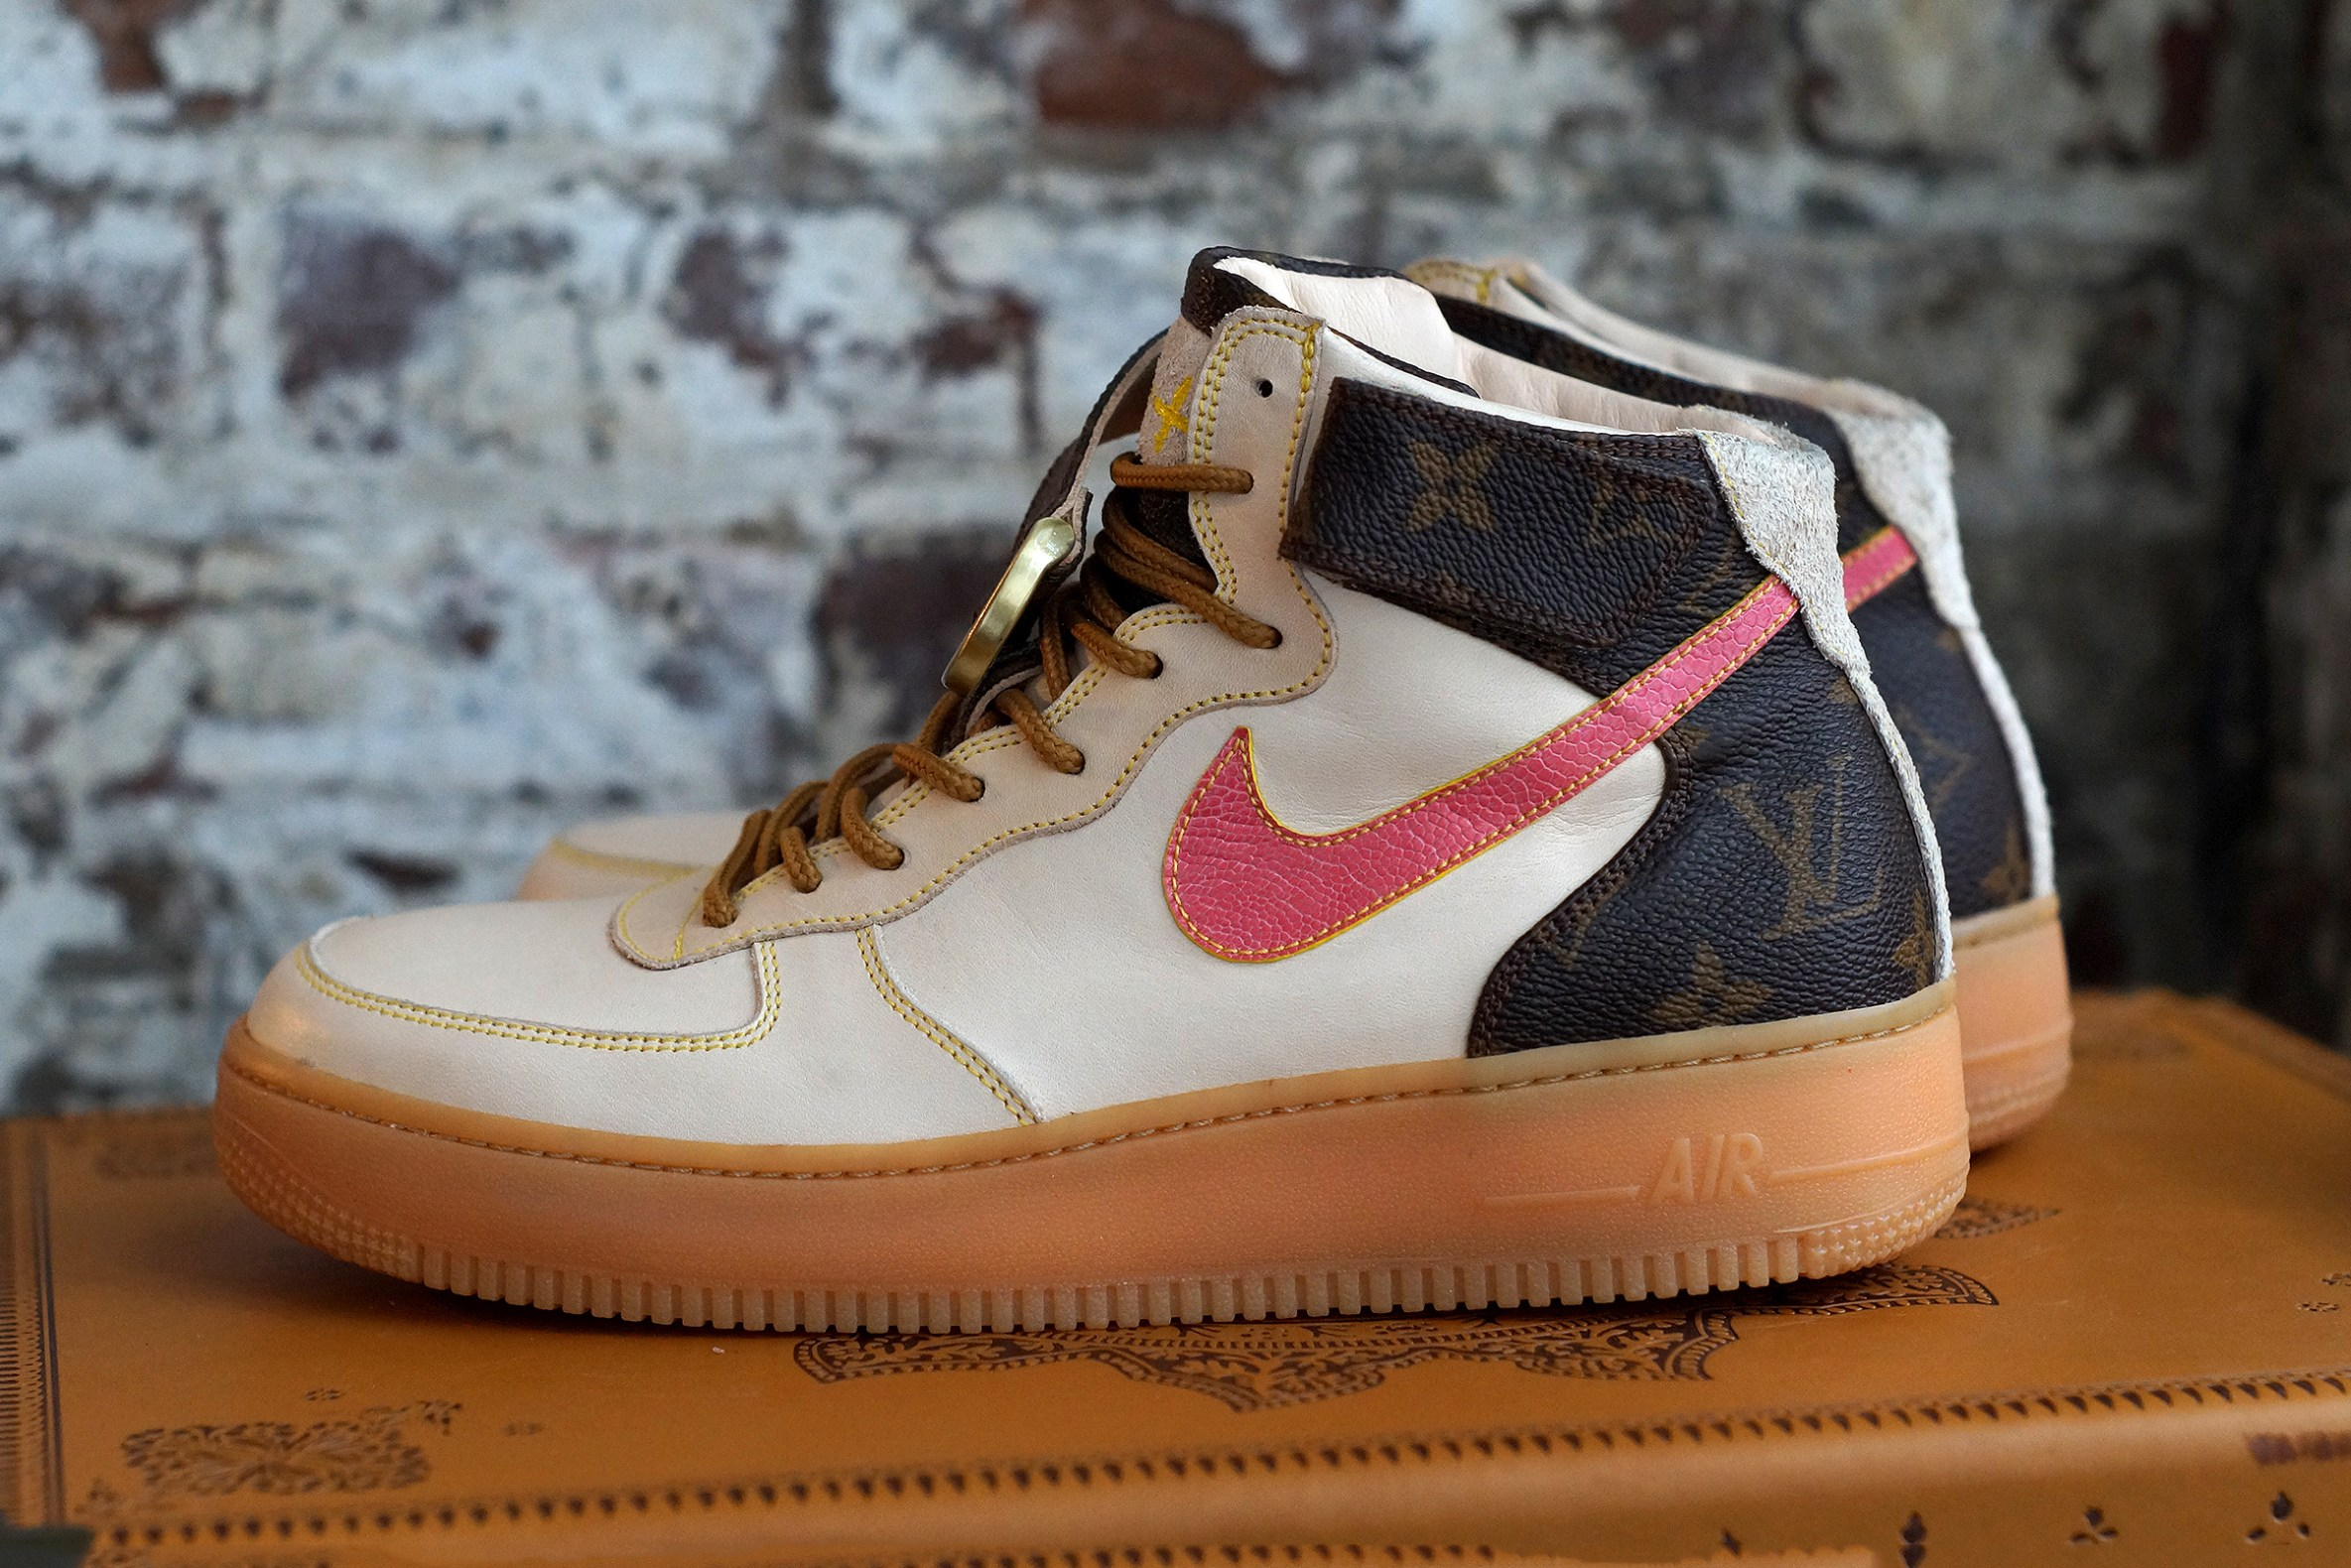 Une touche de Louis Vuitton sur la Nike Air Force 1